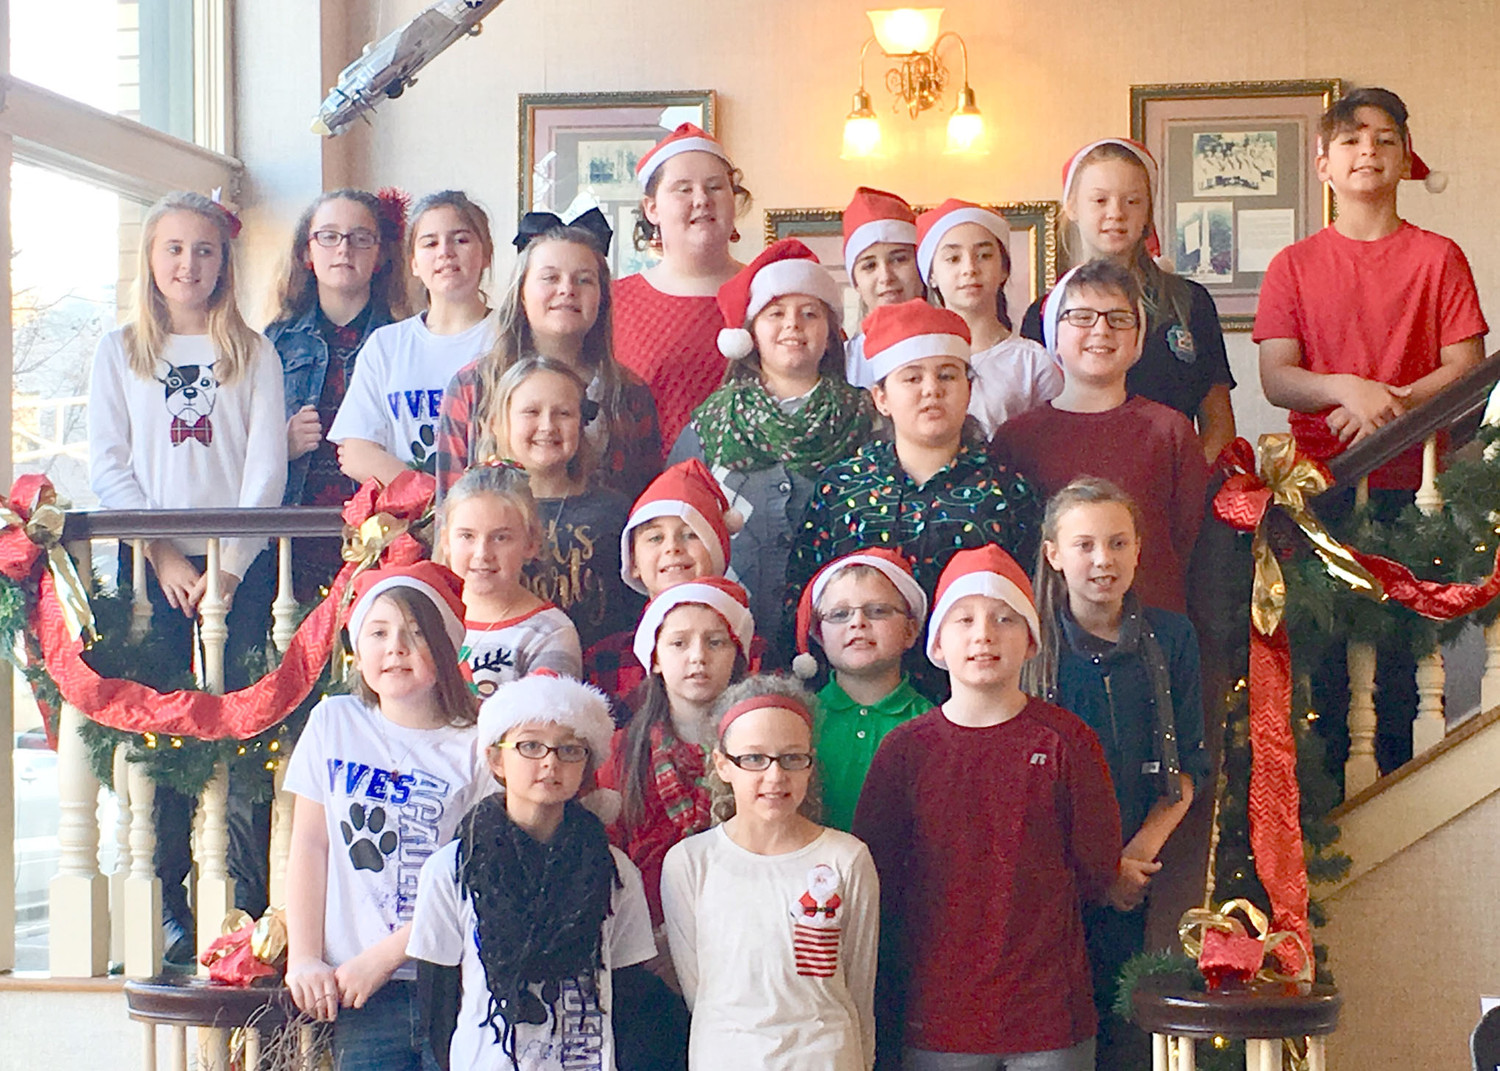 The Valley View Elementary School Leadership Choir performed carols one recent morning at Bank of Cleveland.